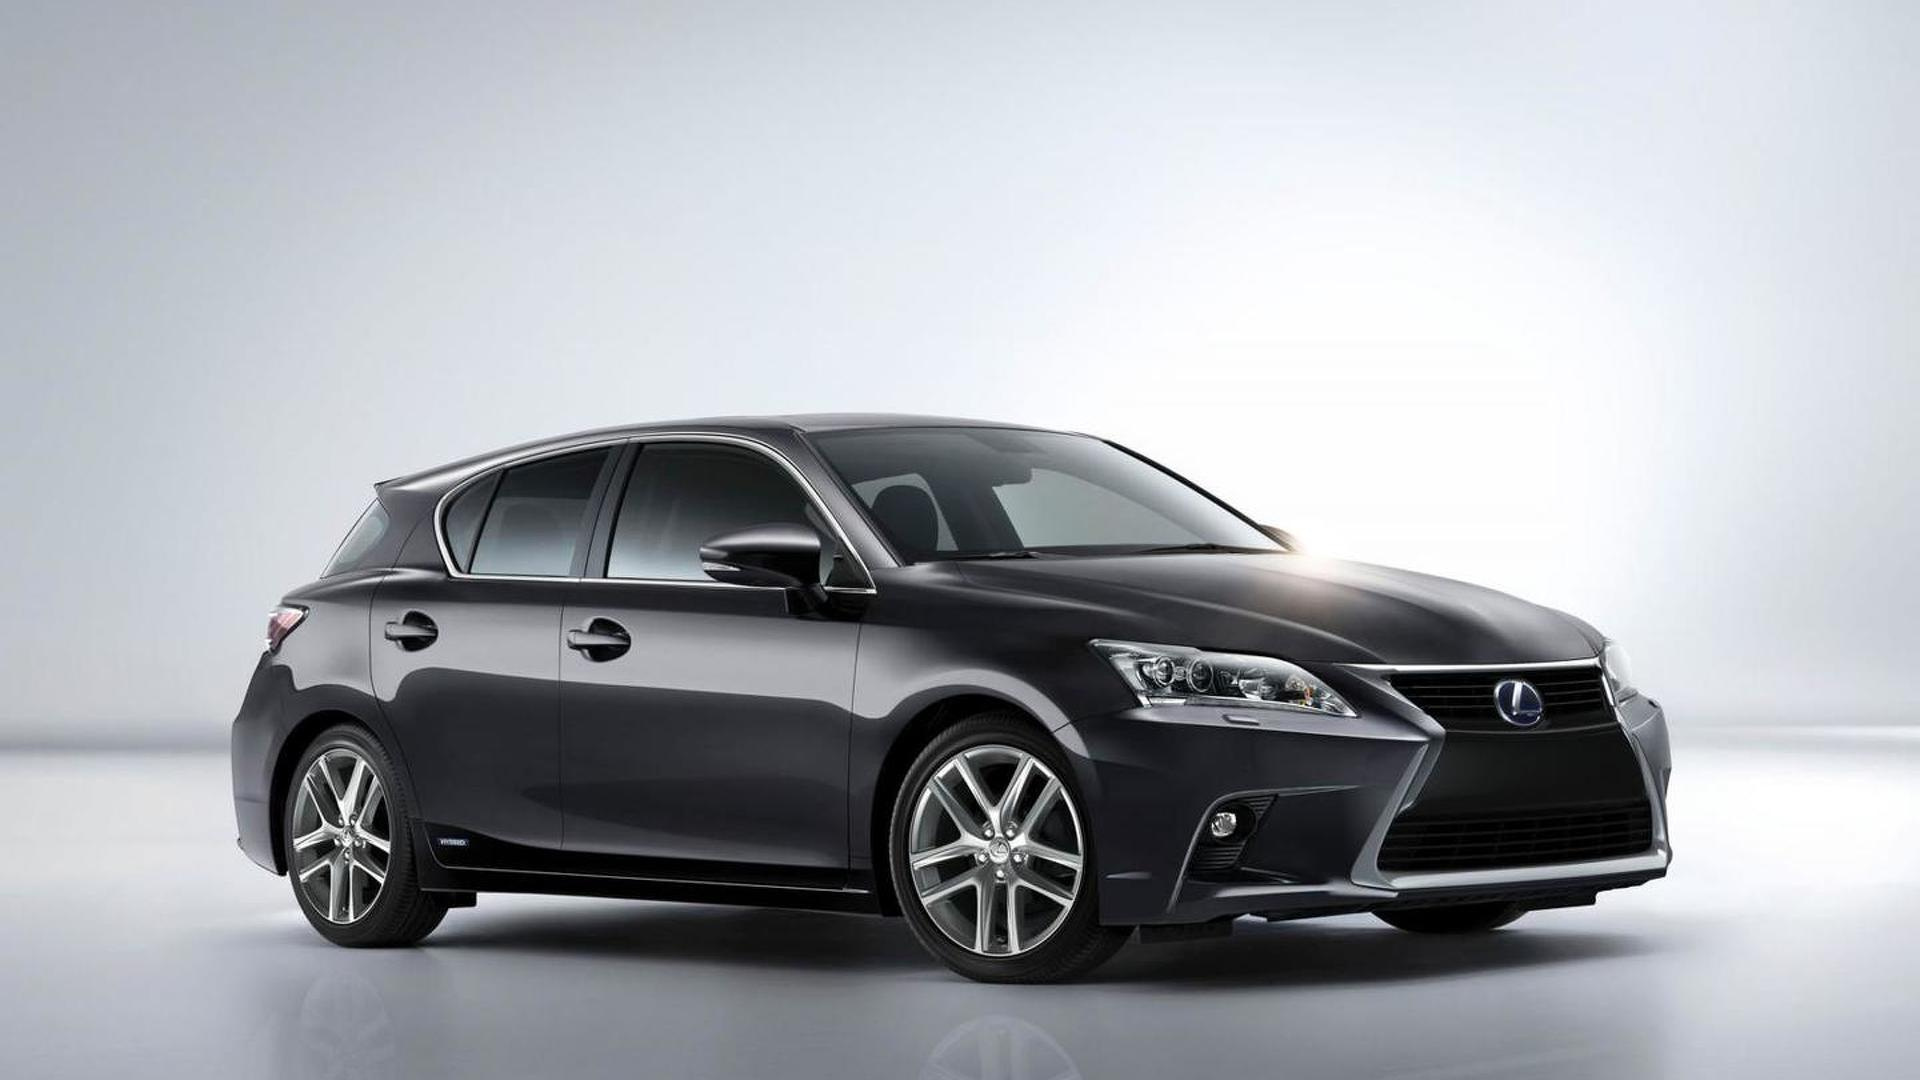 Lexus CT 200h News and Reviews